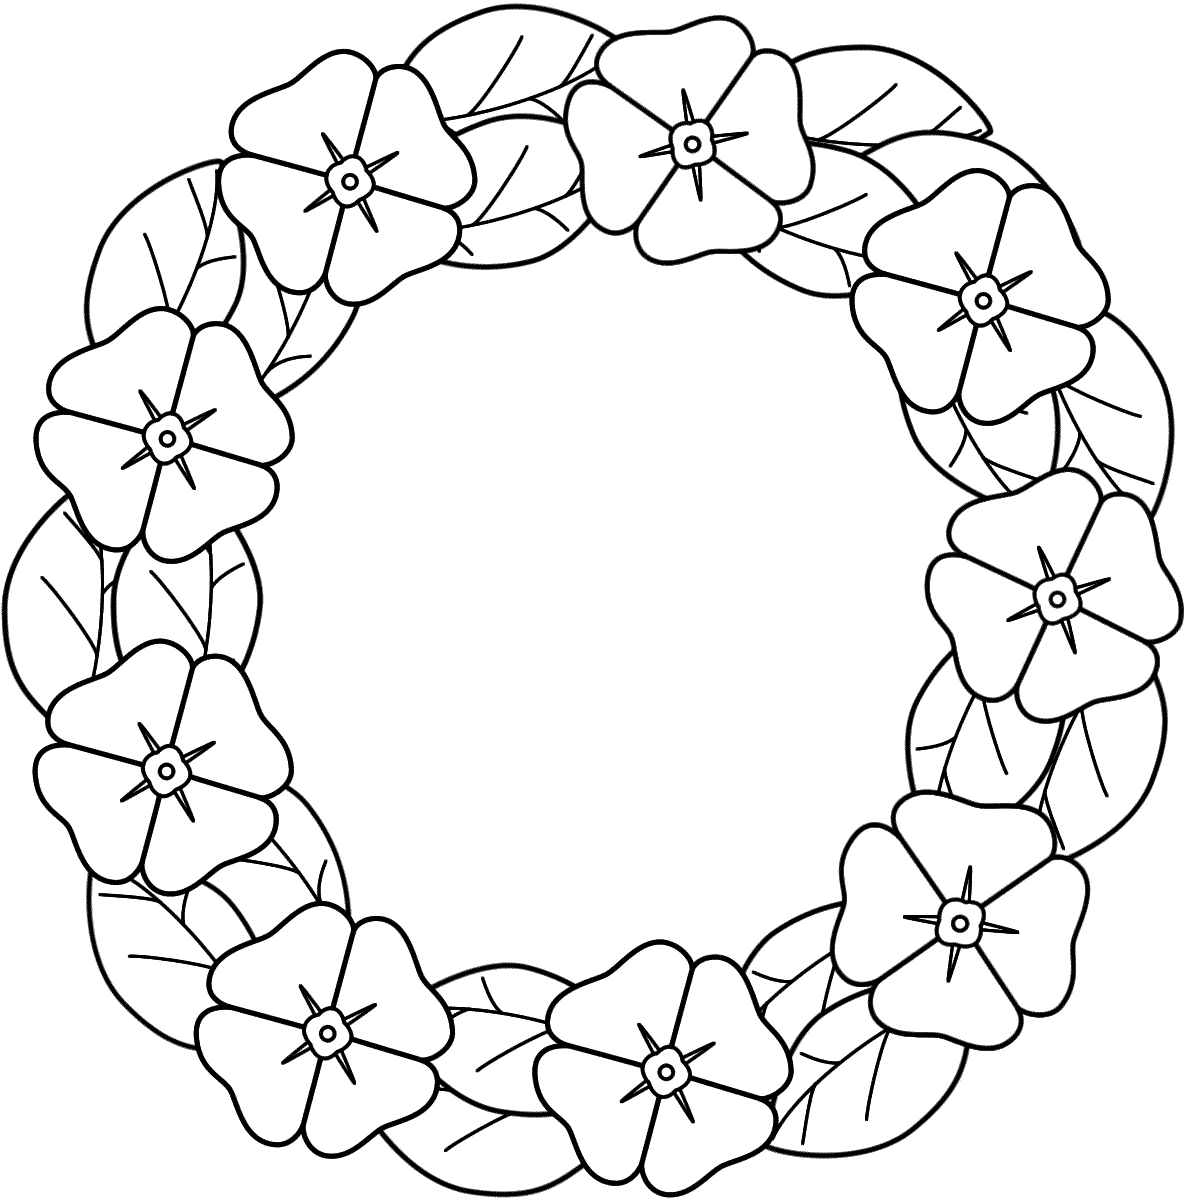 Coloring Pages Wreaths - Coloring Home